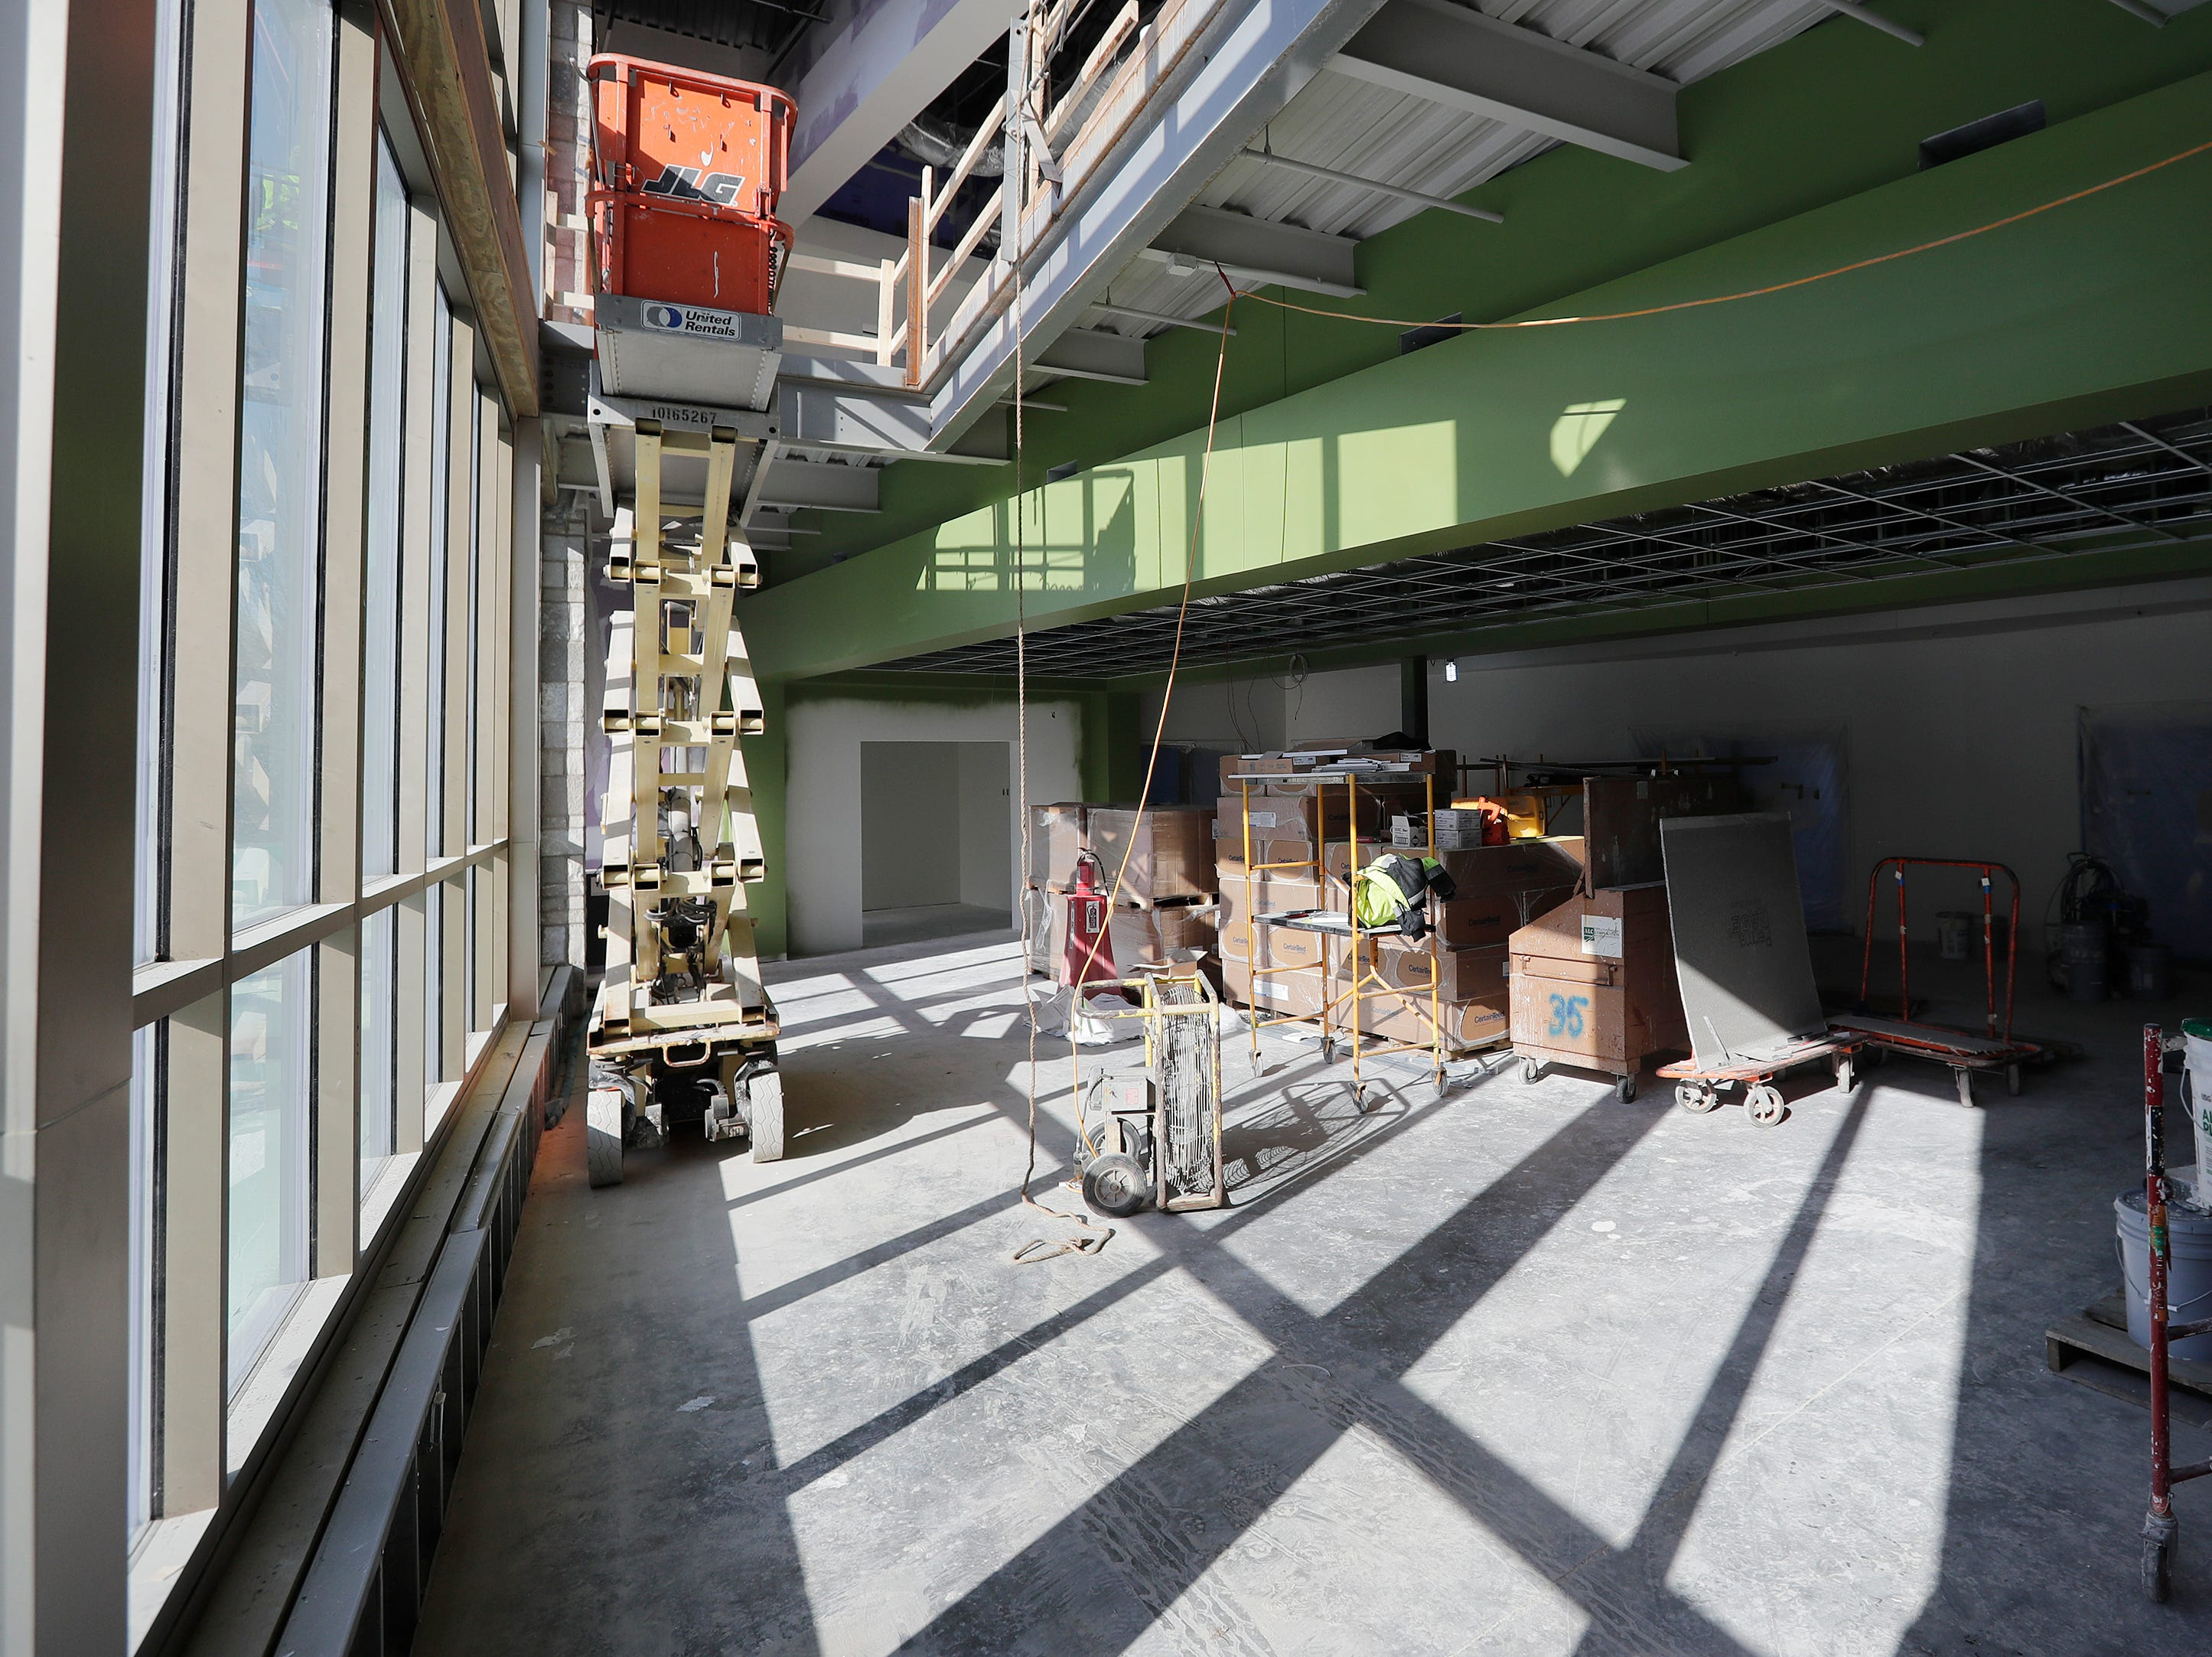 A classroom pod at the under-construction Baird Elementary School is shown on Wednesday, February 13, 2019 in Green Bay, Wis.